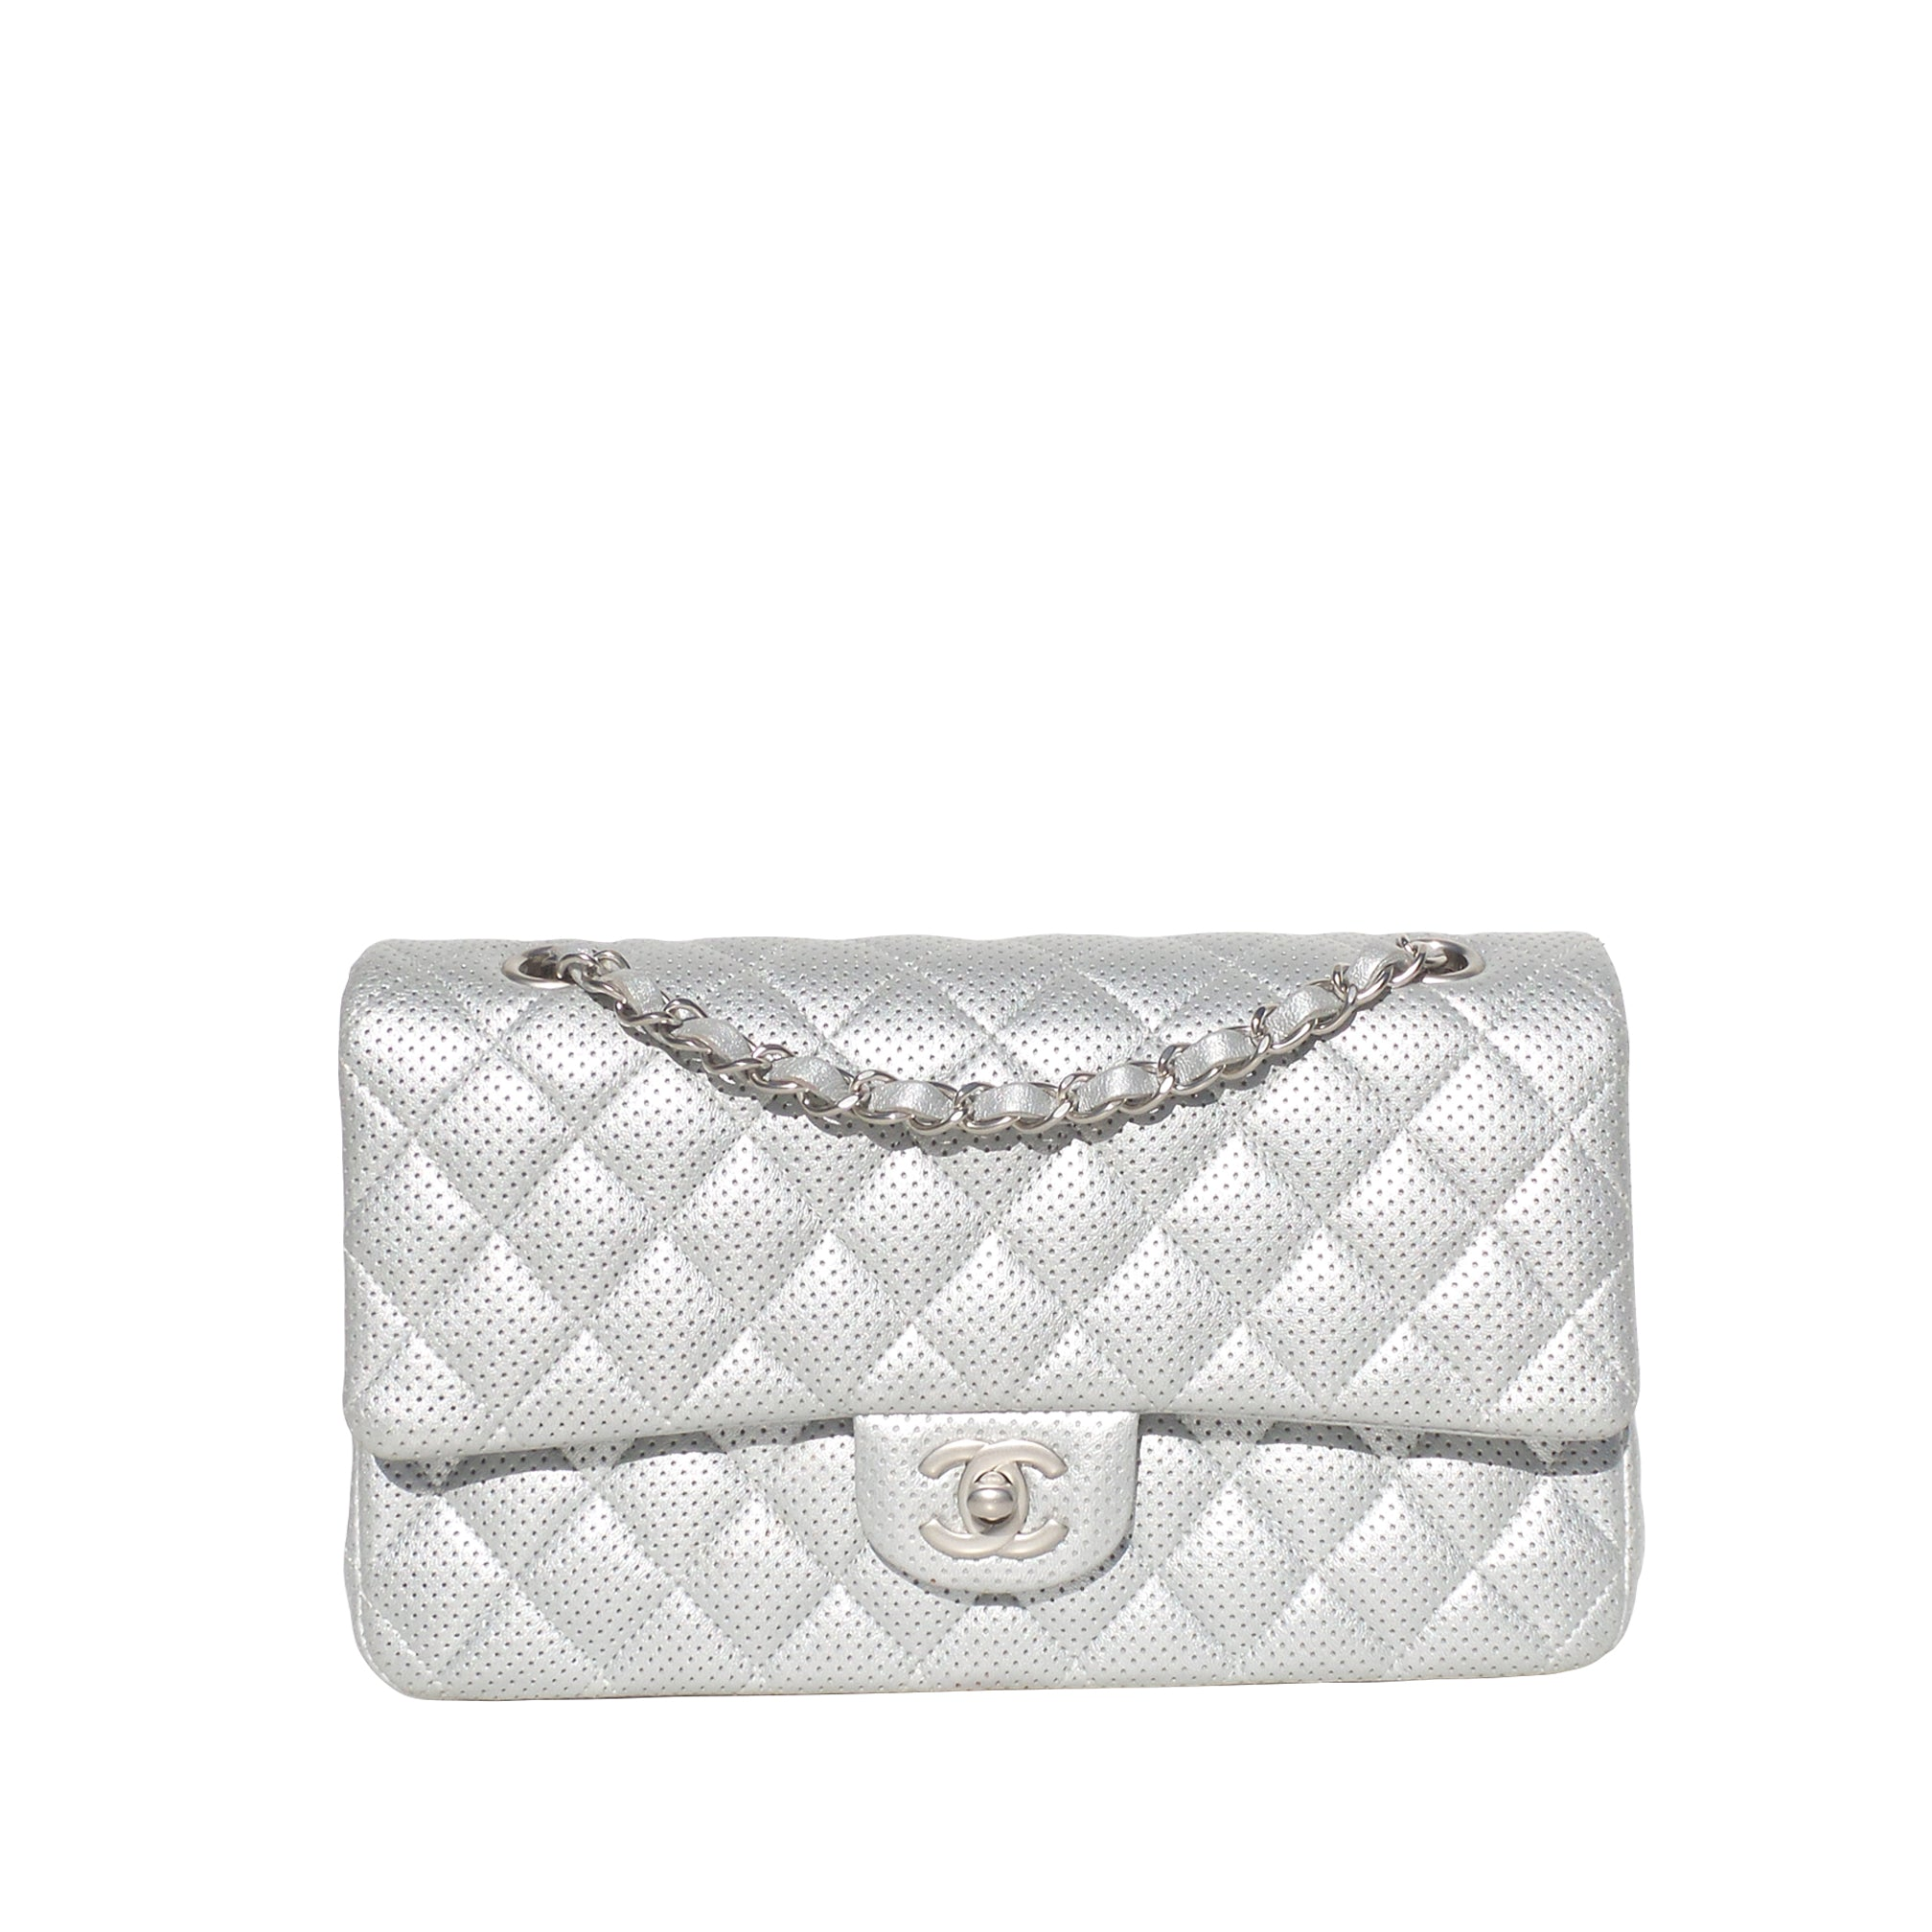 CHANEL 15C Lt Silver Perforated Leather Quilted Medium Double Flap Shoulder Bag